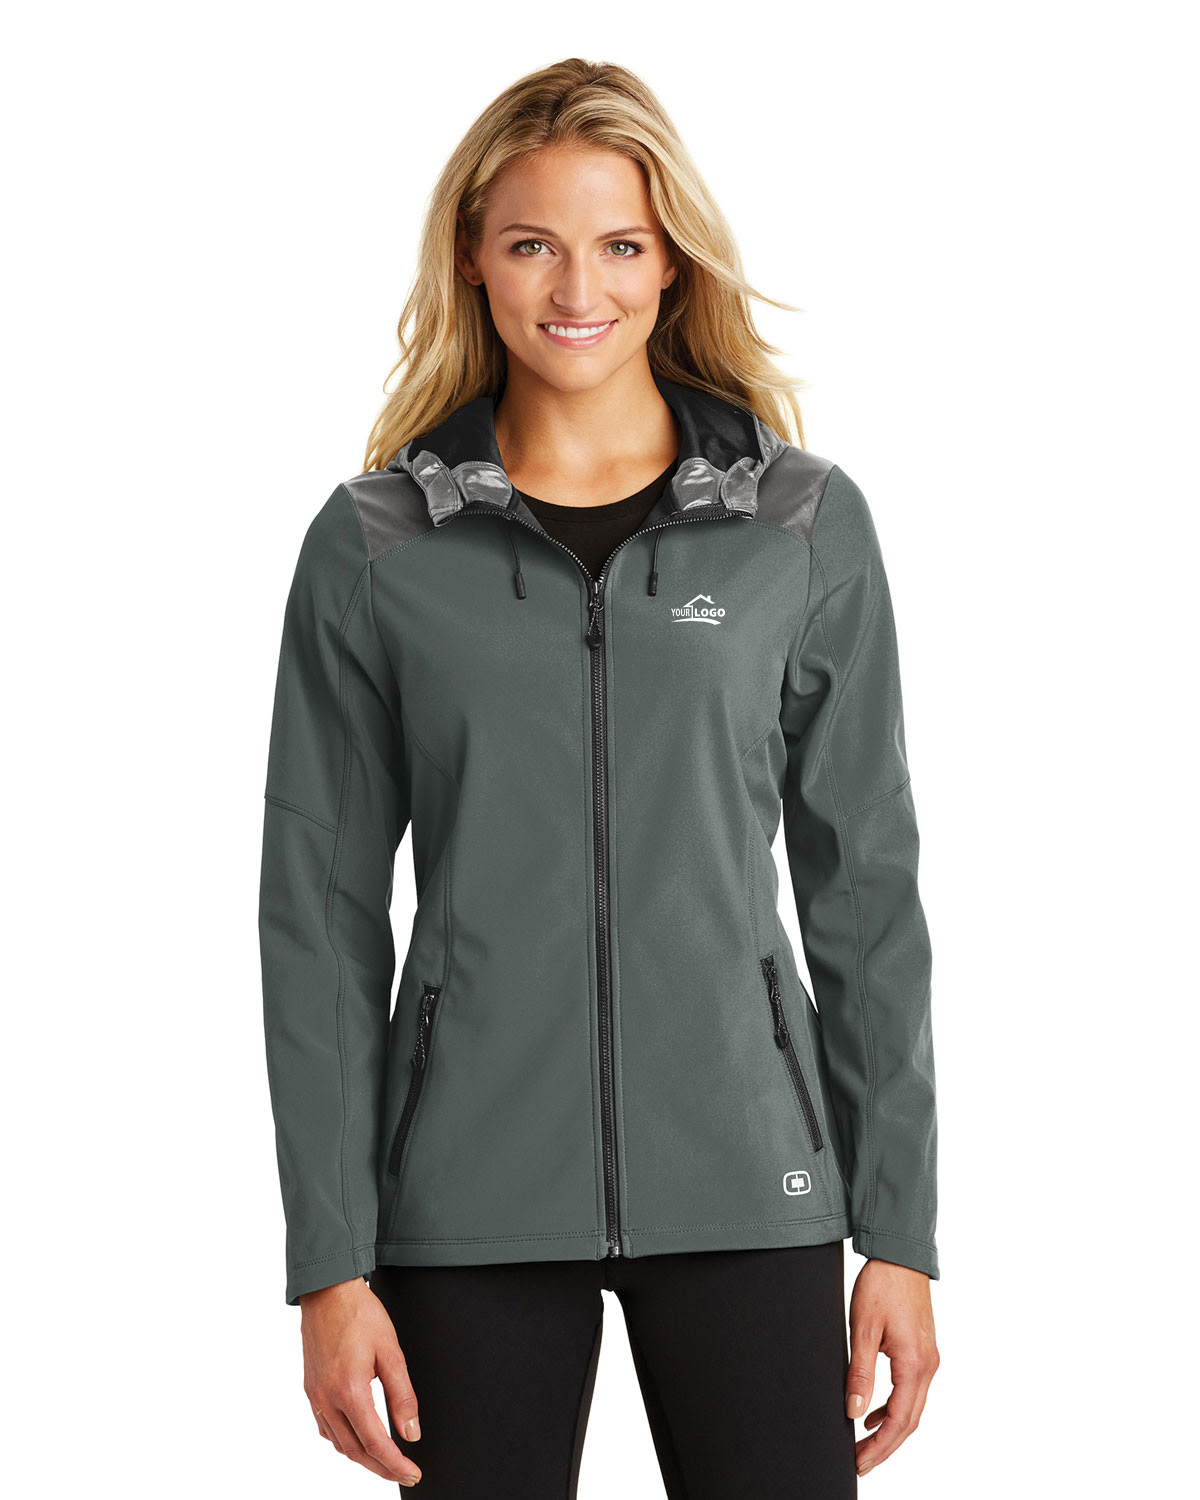 Ogio Endurance LOE723 Women Jacket